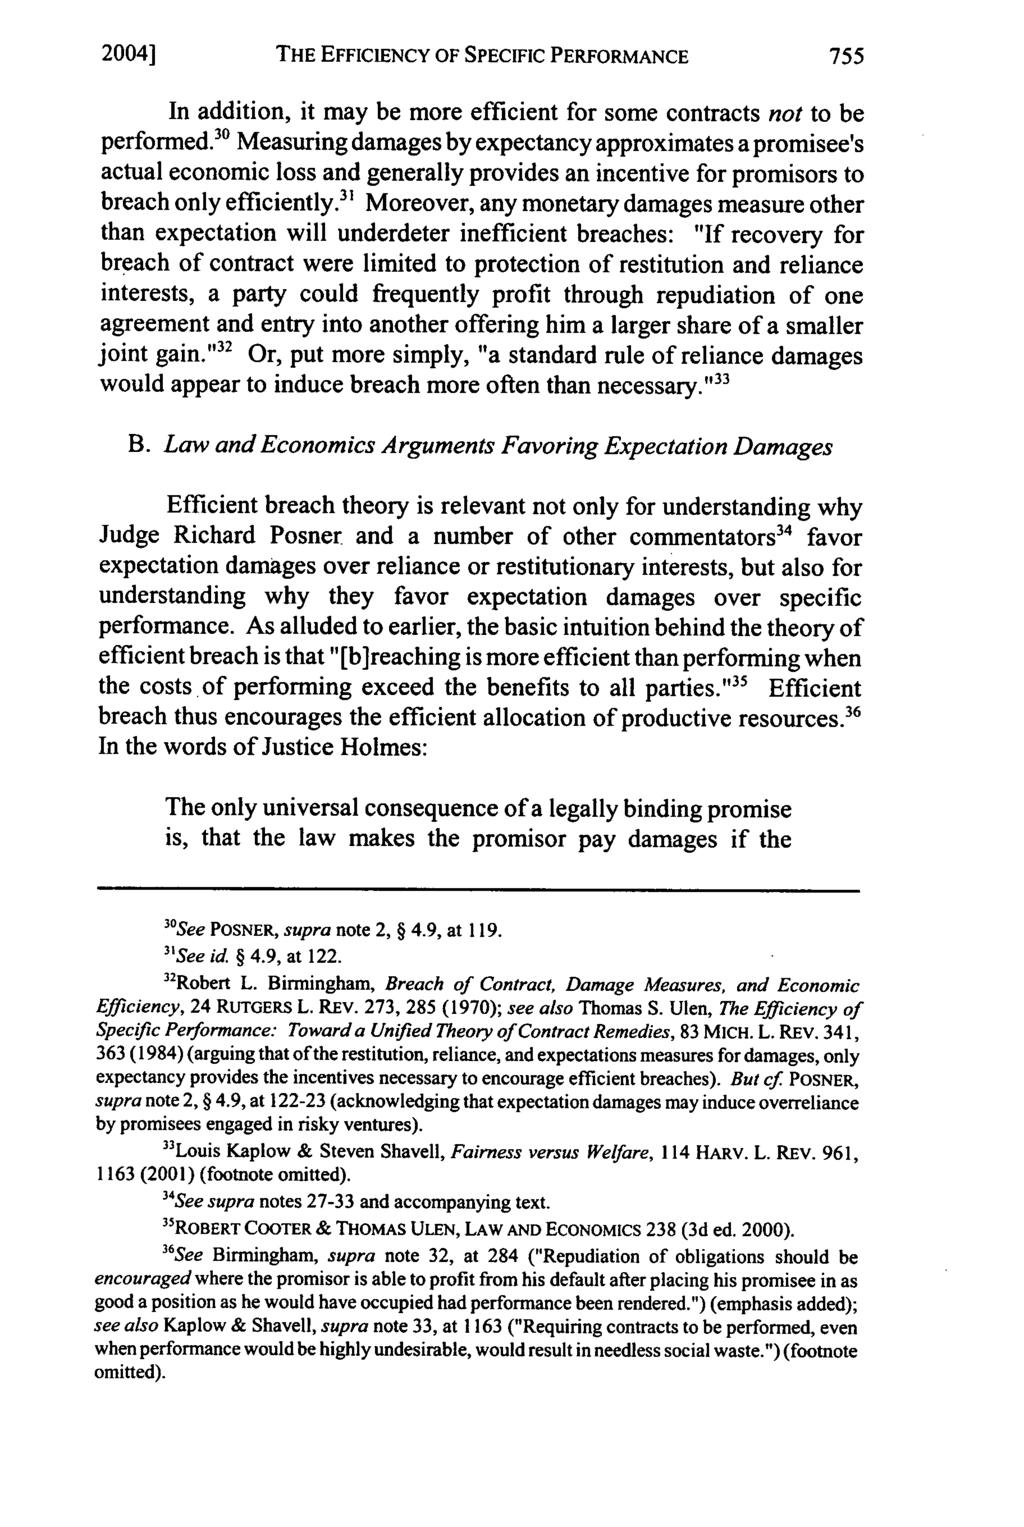 2004] THE EFFICIENCY OF SPECIFIC PERFORMANCE In addition, it may be more efficient for some contracts not to be performed.